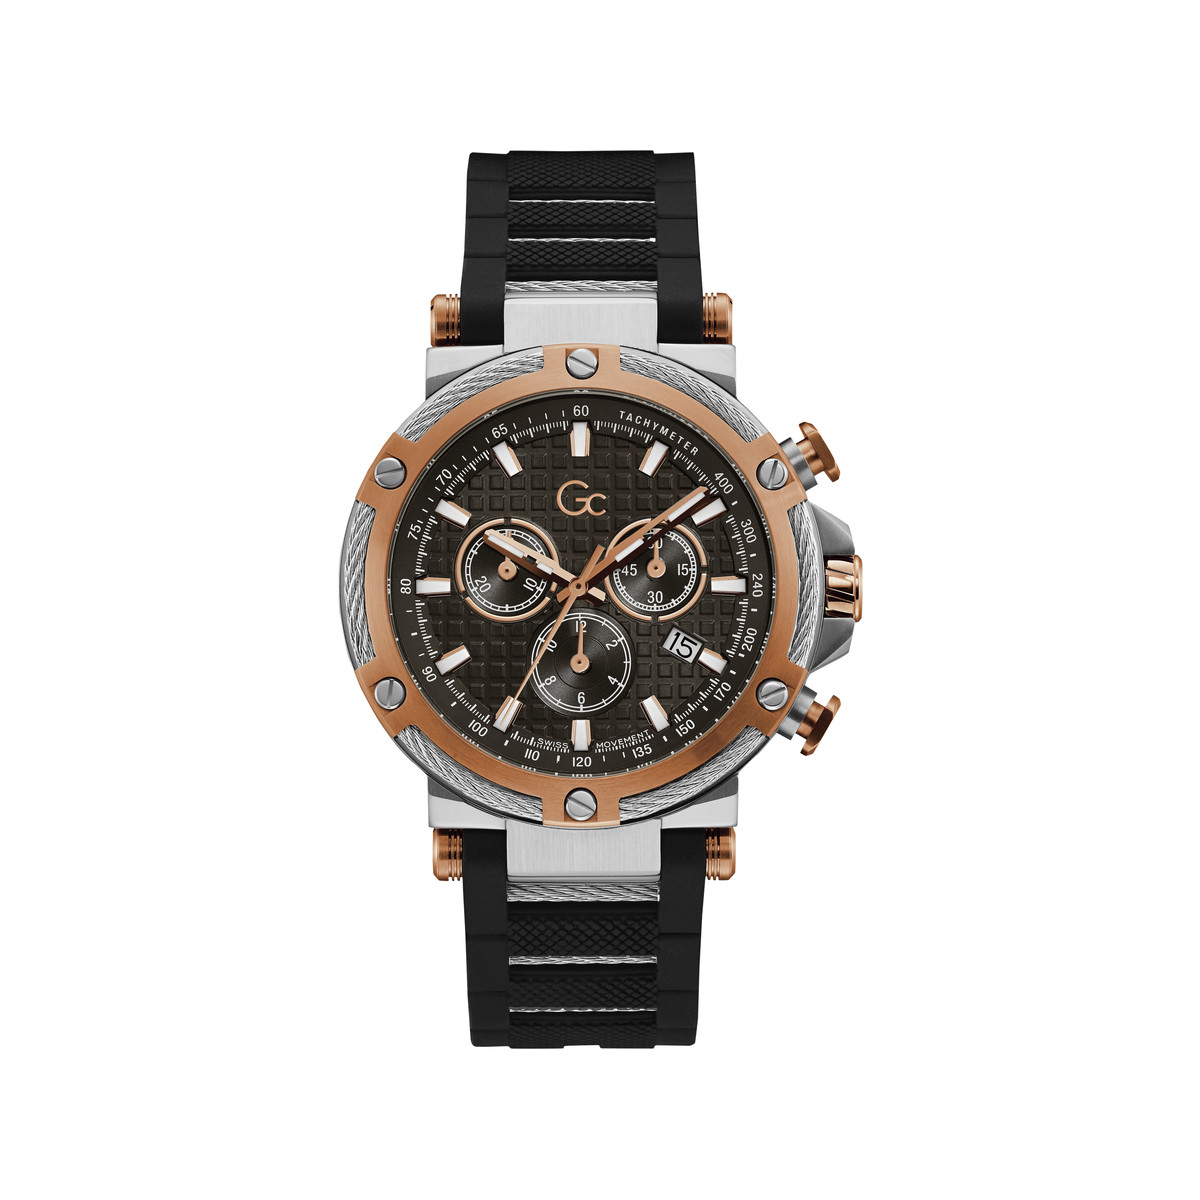 Montre Guess Collection homme chronographe cuir - vue V1